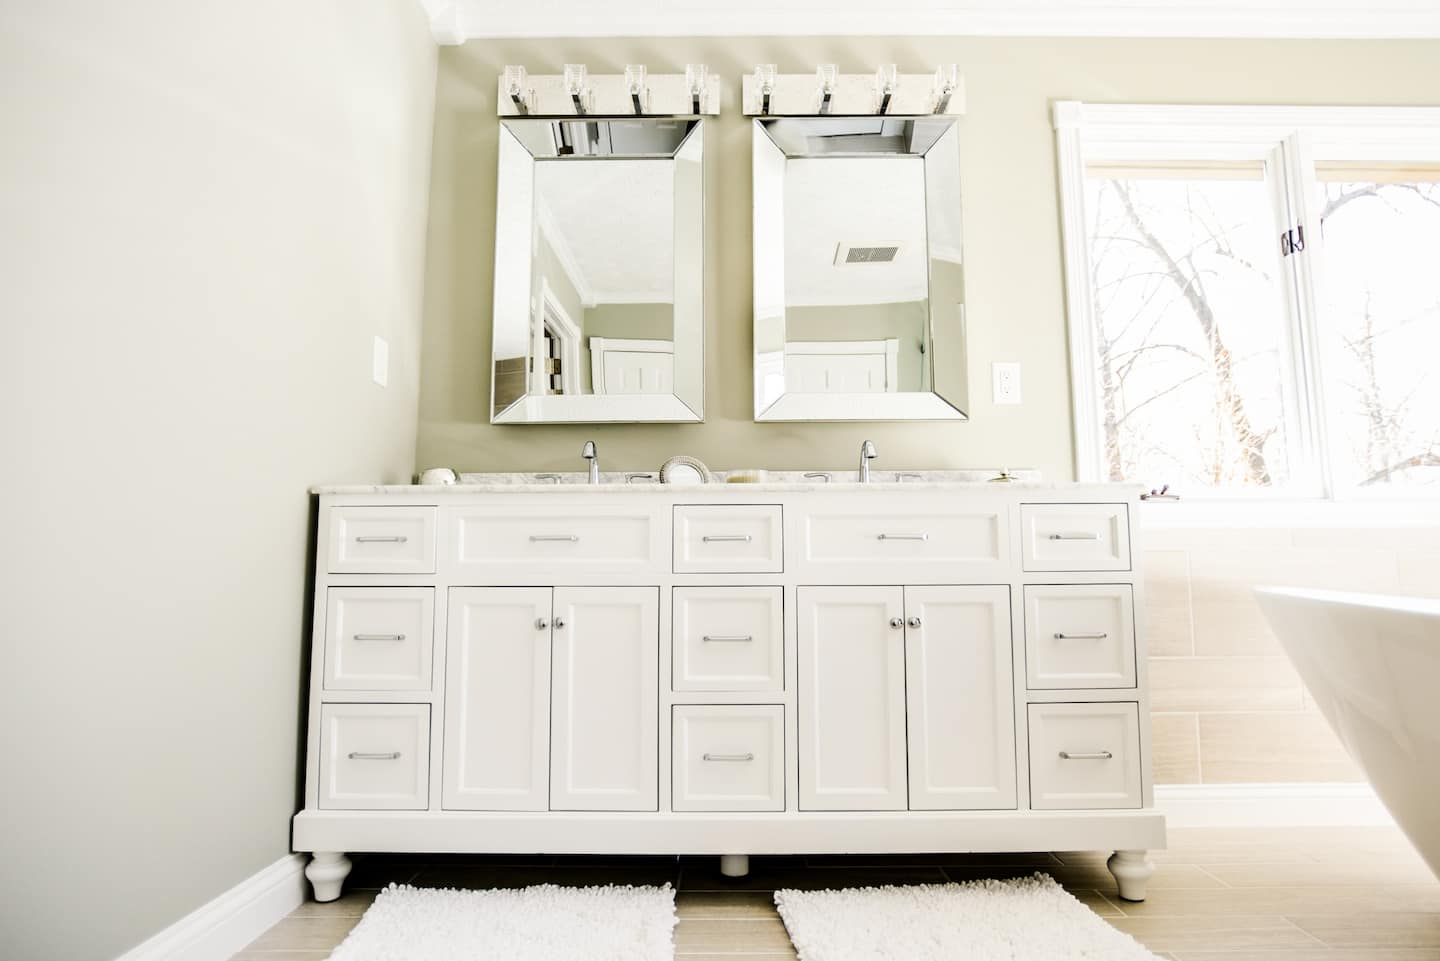 White Bathroom Sink Cabinets bathroom sink vanity and cabinet options | angie's list